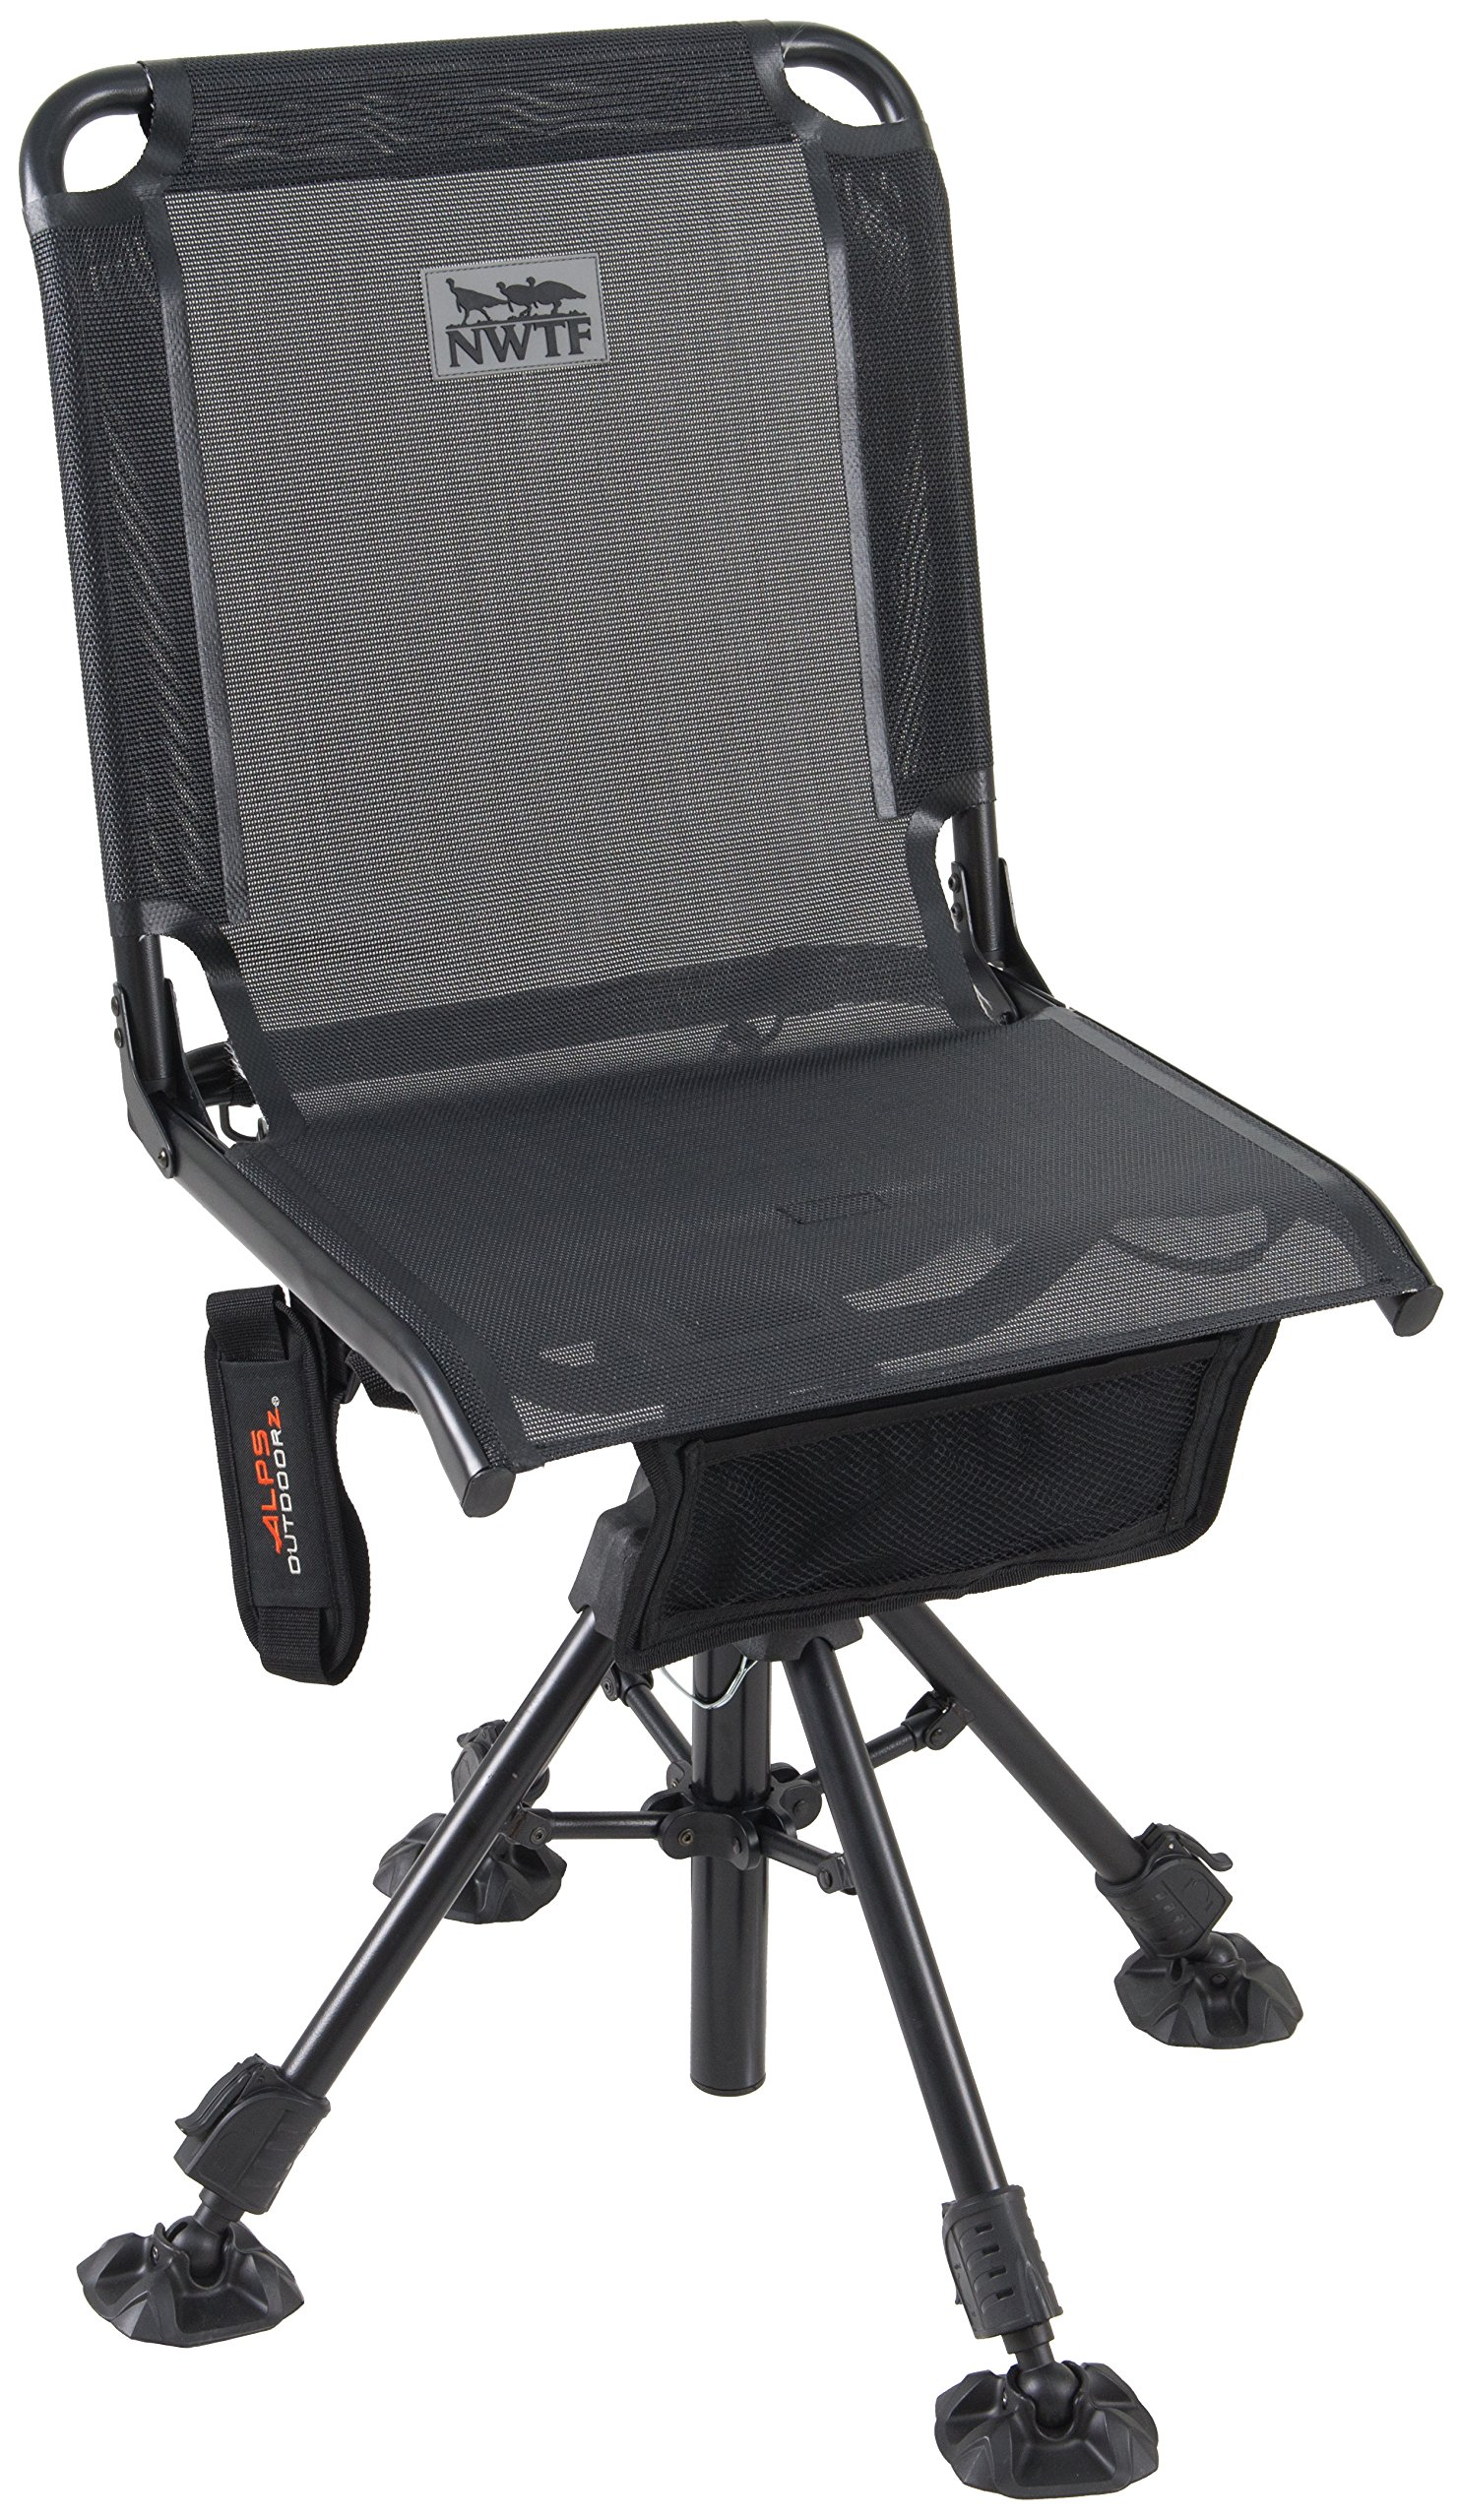 ALPS OutdoorZ NWTF Roost Chair